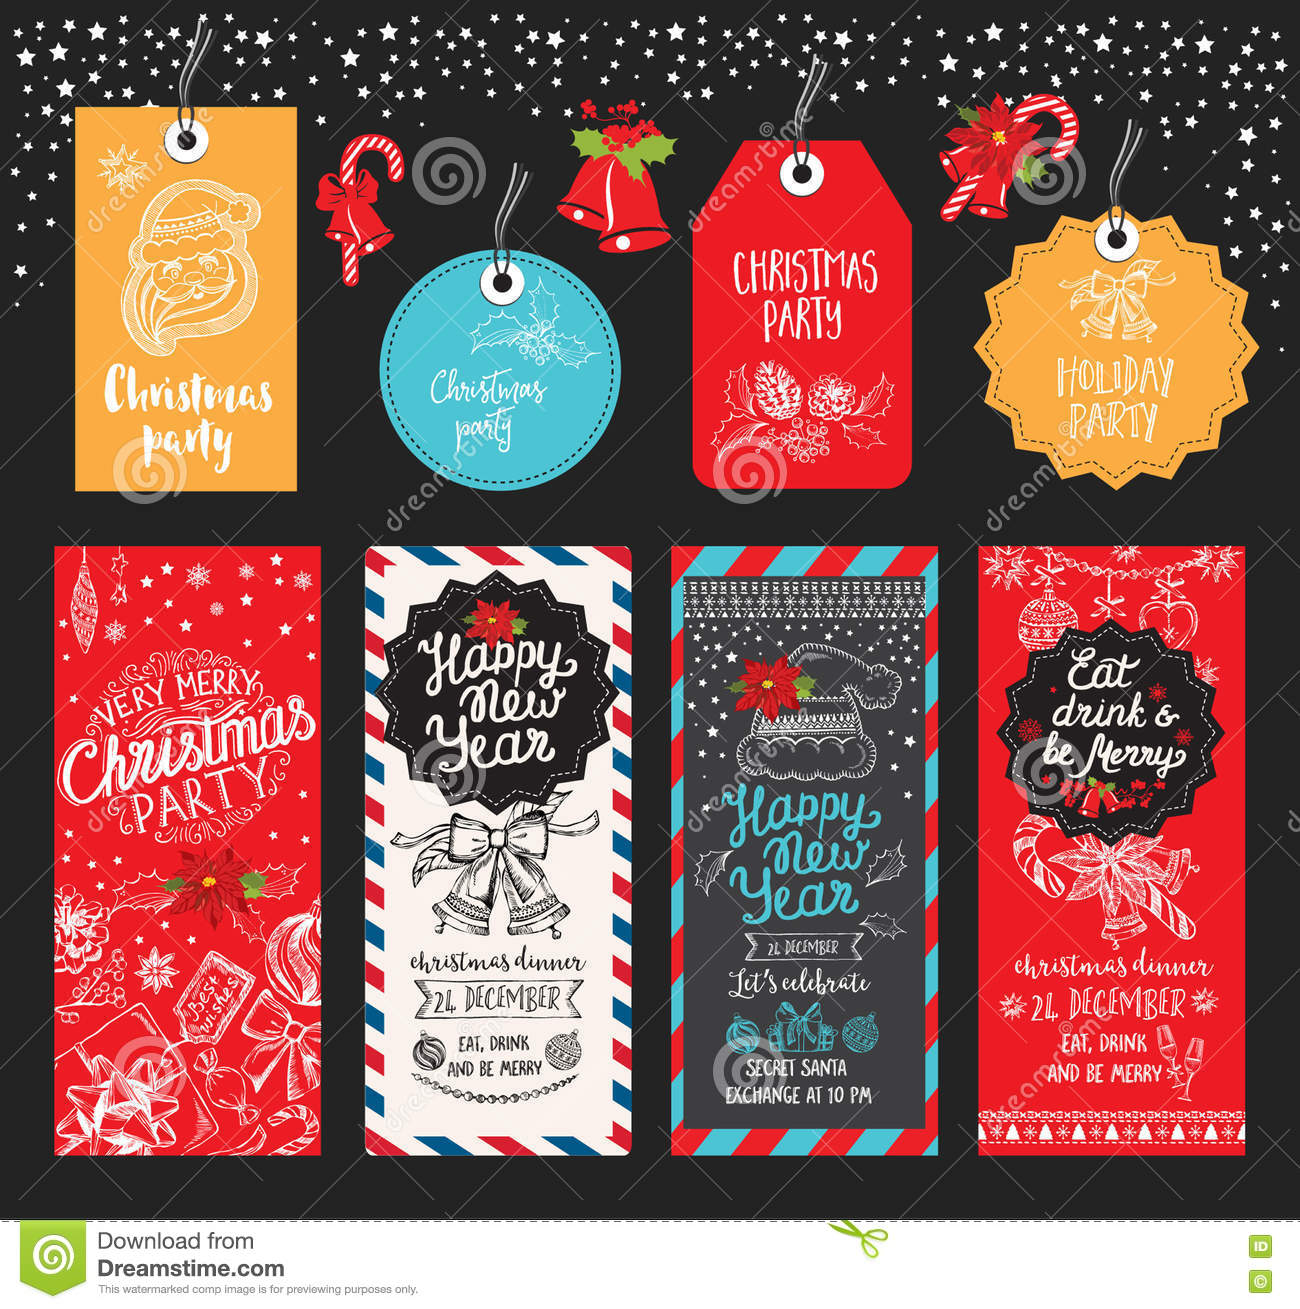 christmas party invitation food menu restaurant stock vector